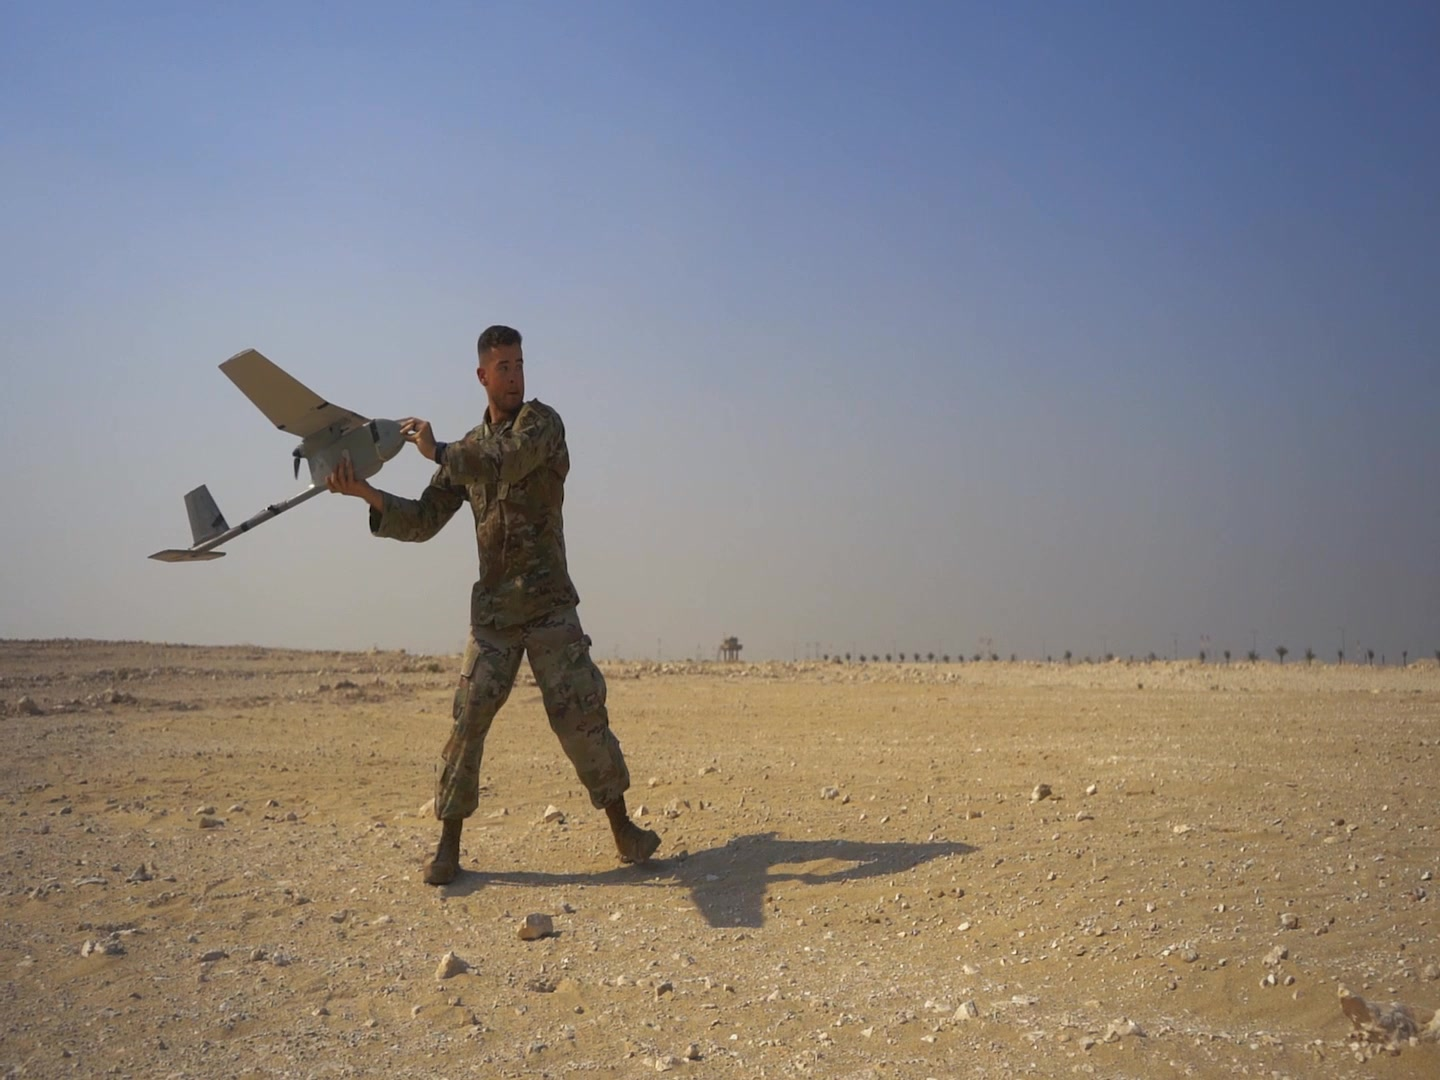 Raven B operators conduct training with the small unmanned aircraft system at Al Udeid Air Base, Qatar. Raven Bs provide real-time aerial intelligence, surveillance and reconnaissance and enhance the 379th ESFS's force protection mission capabilities.